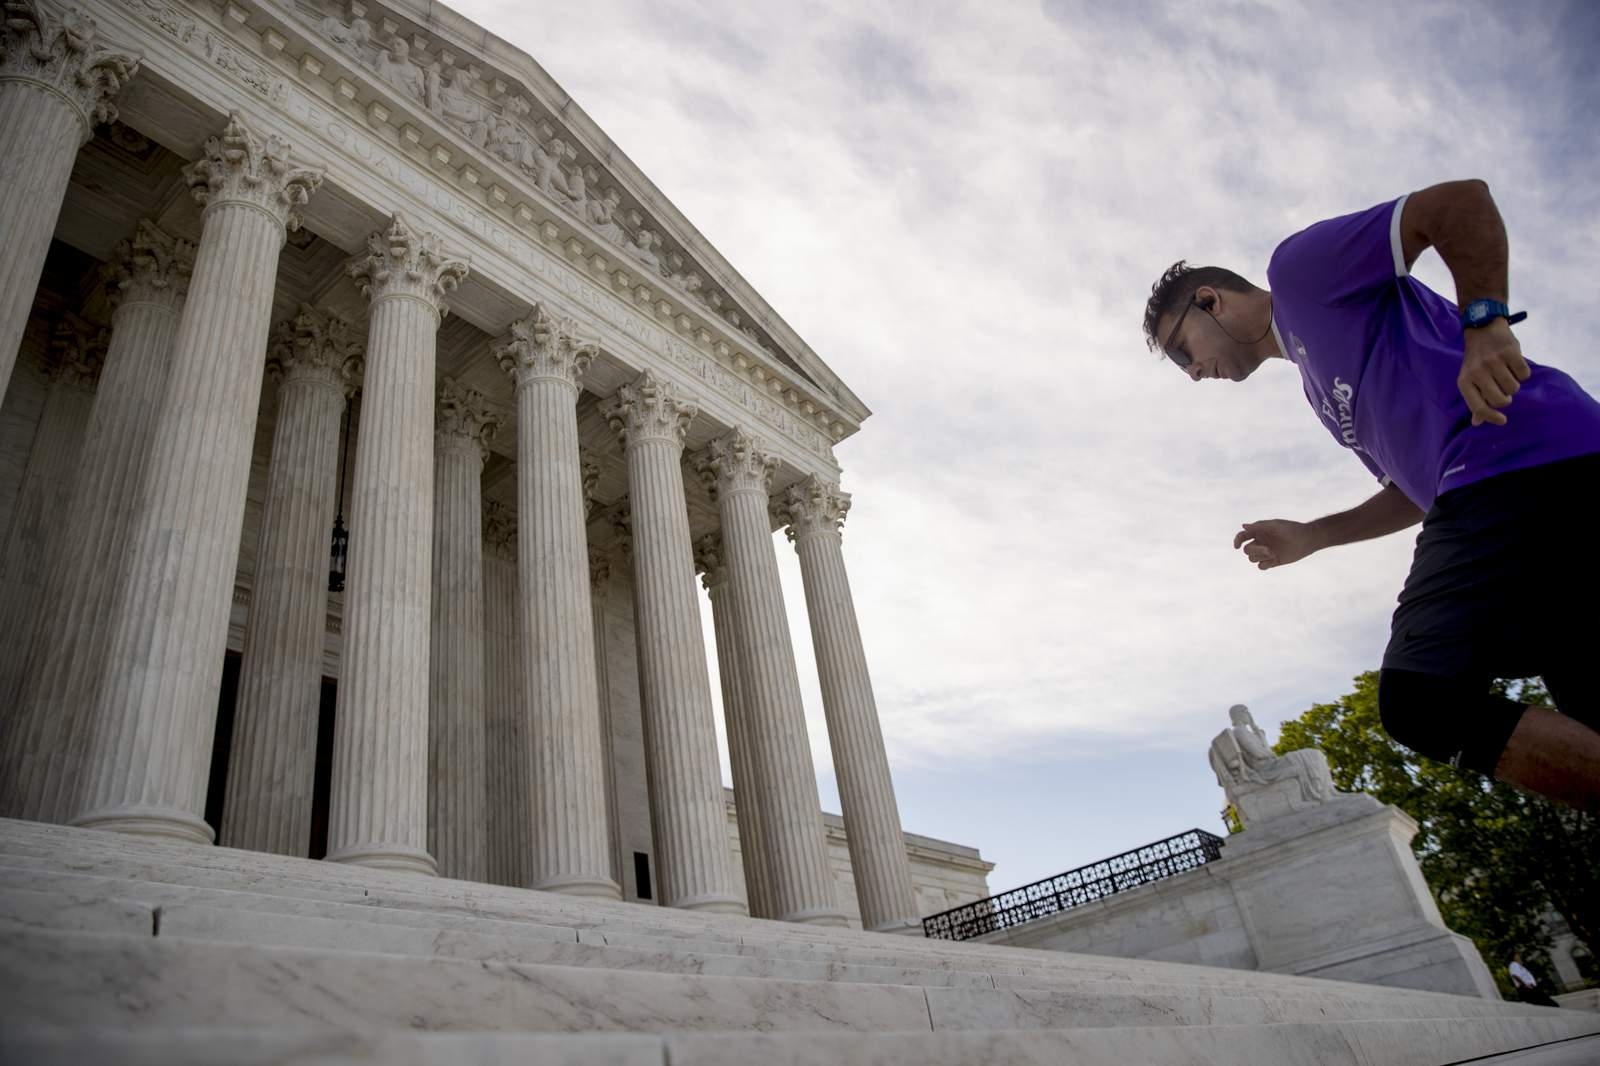 Called to order: Supreme Court holds 1st arguments by phone